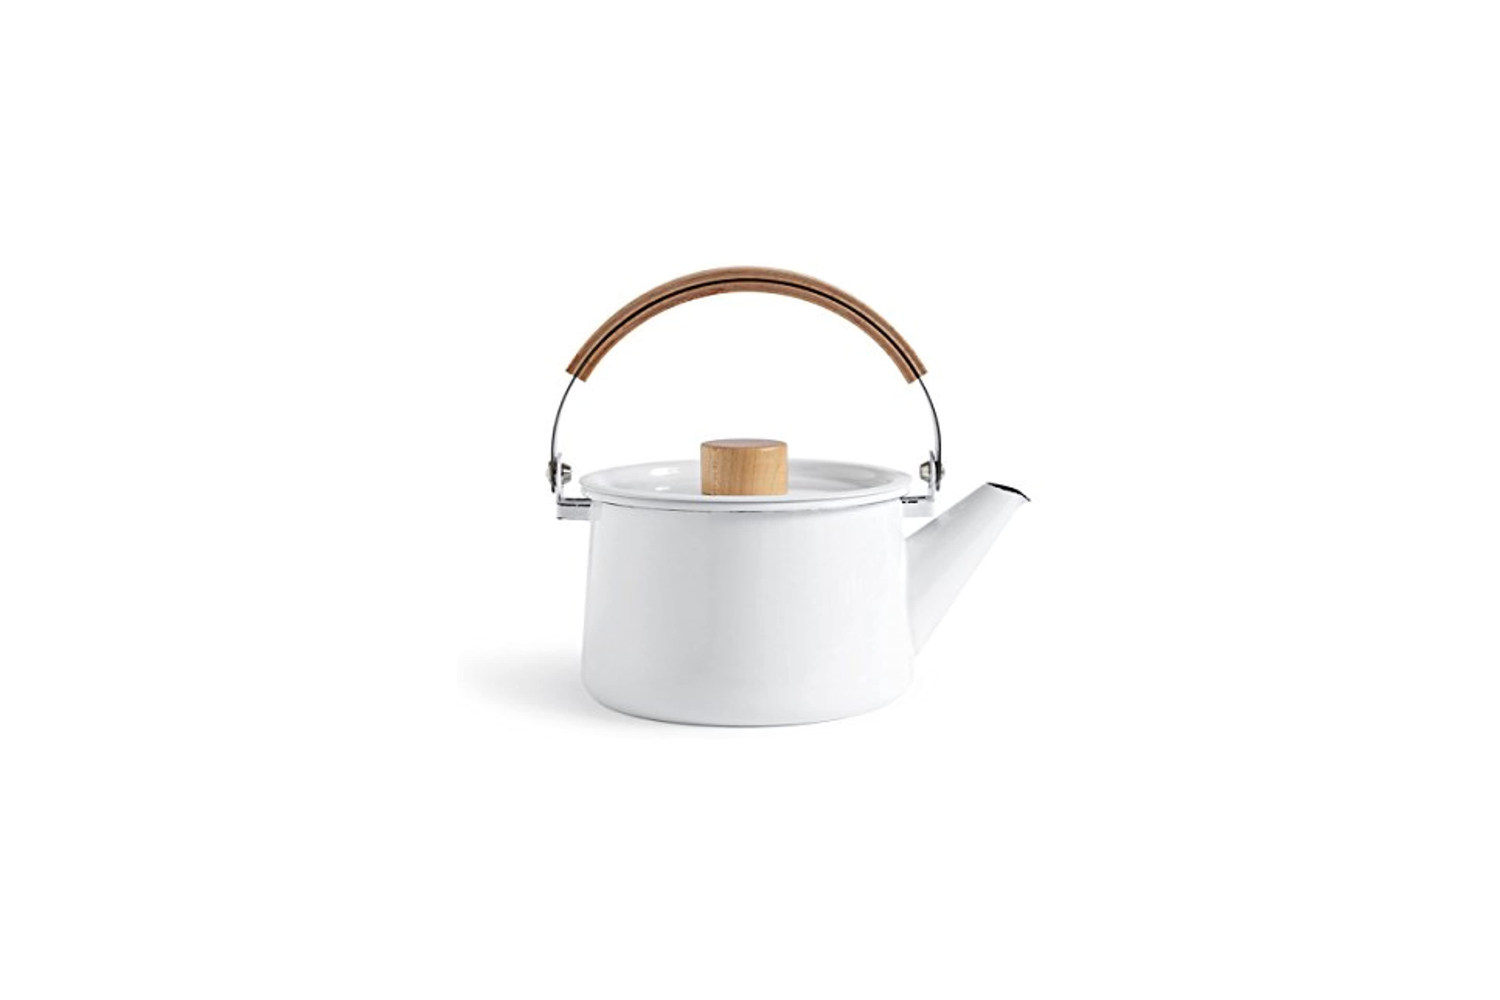 designed by makoto koizumi for kaico, the classic kaico kettle is \$75.\15 at h 23